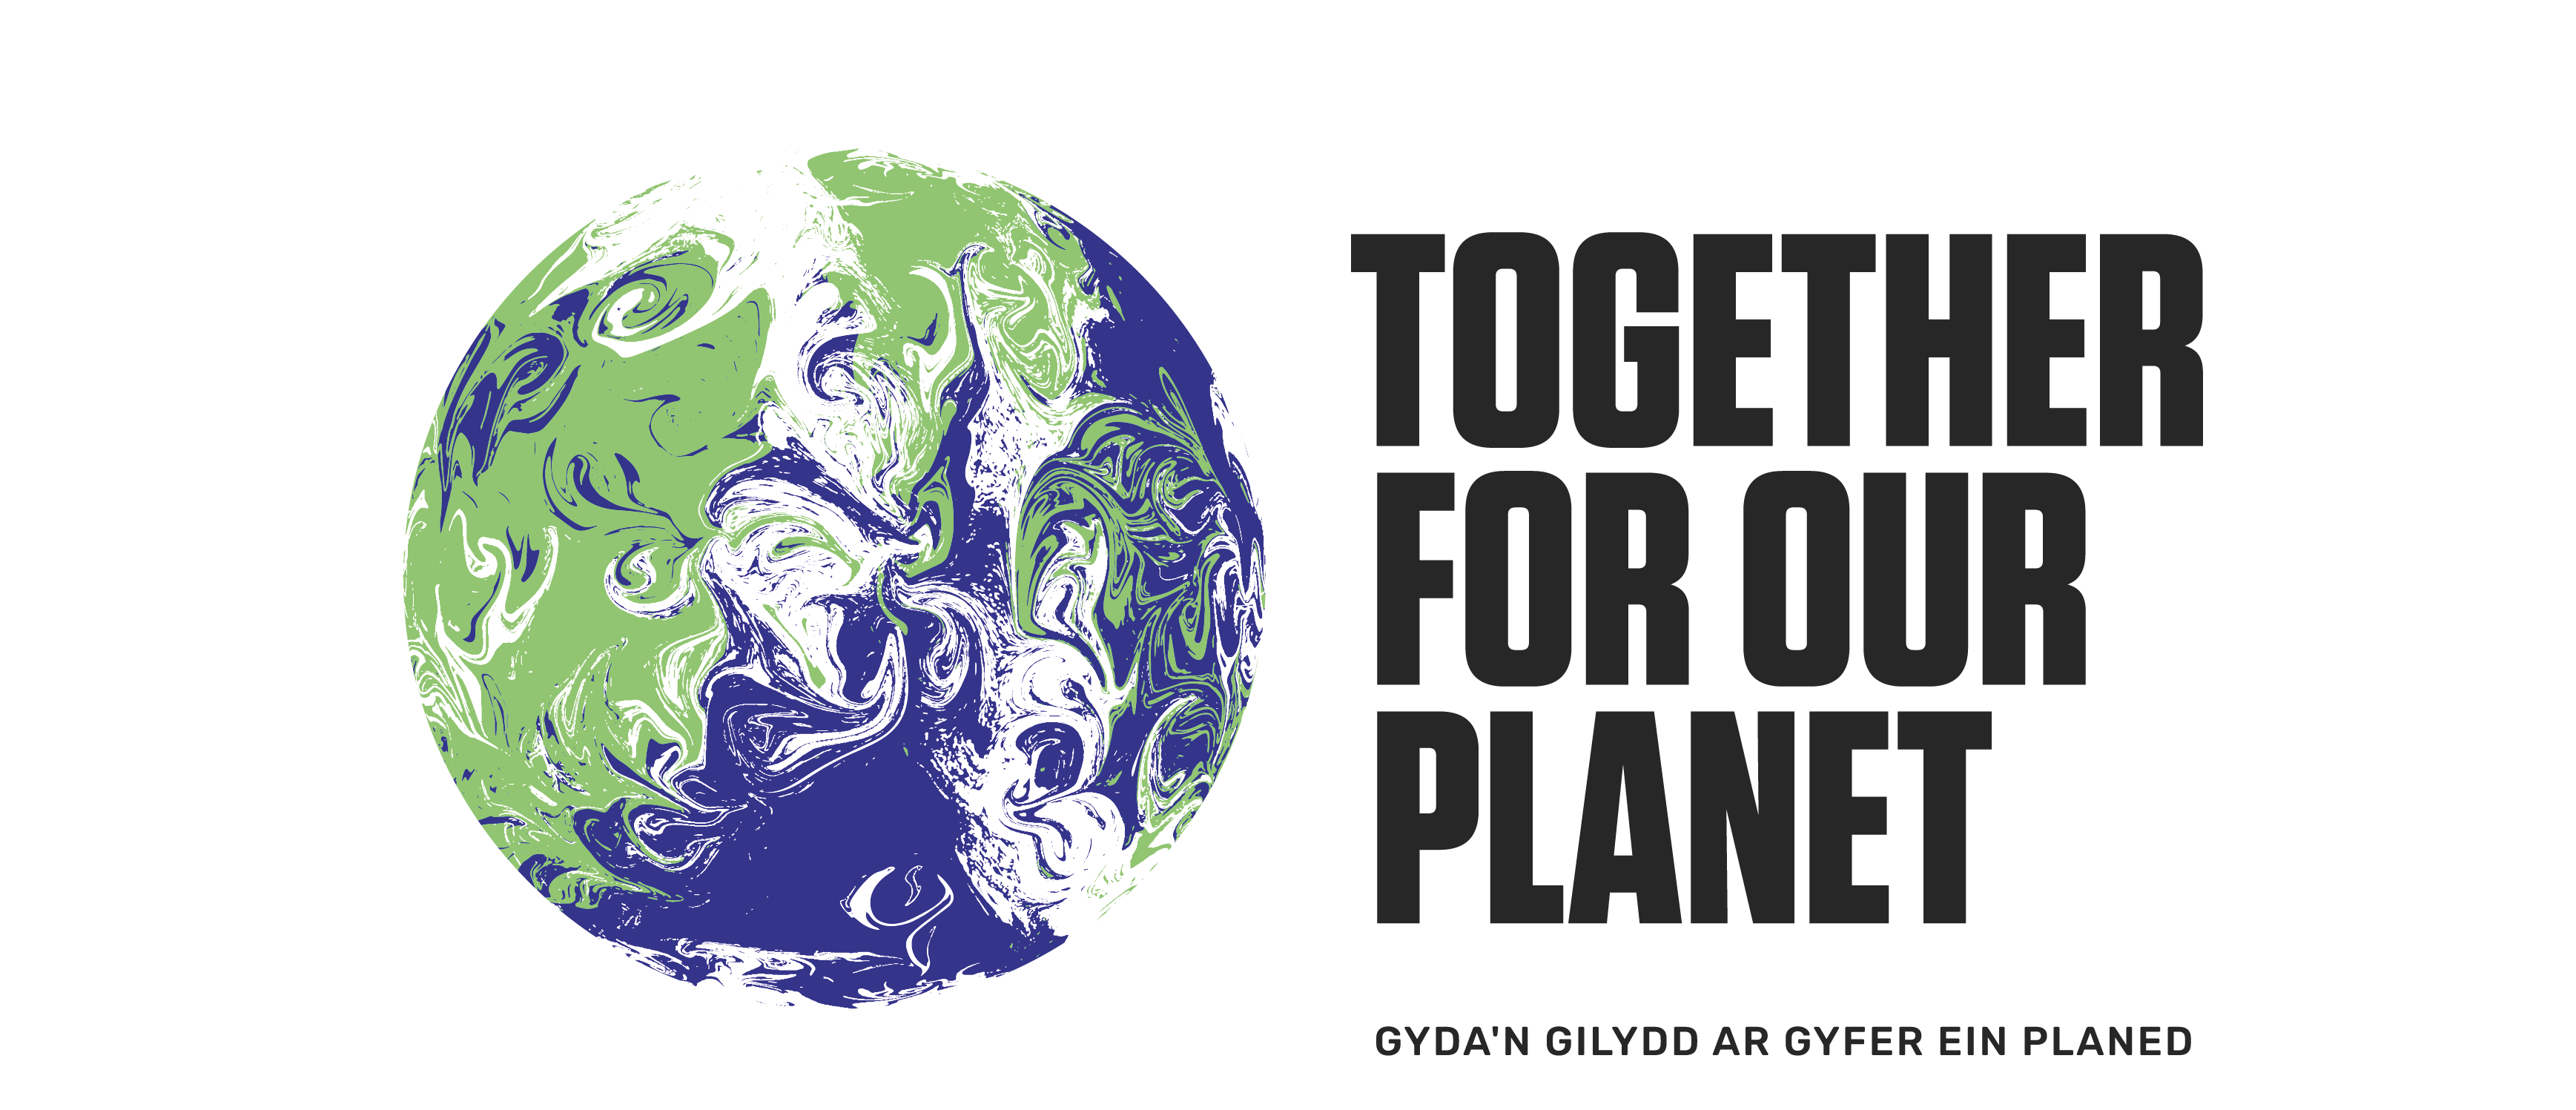 COP26 Together for our planet